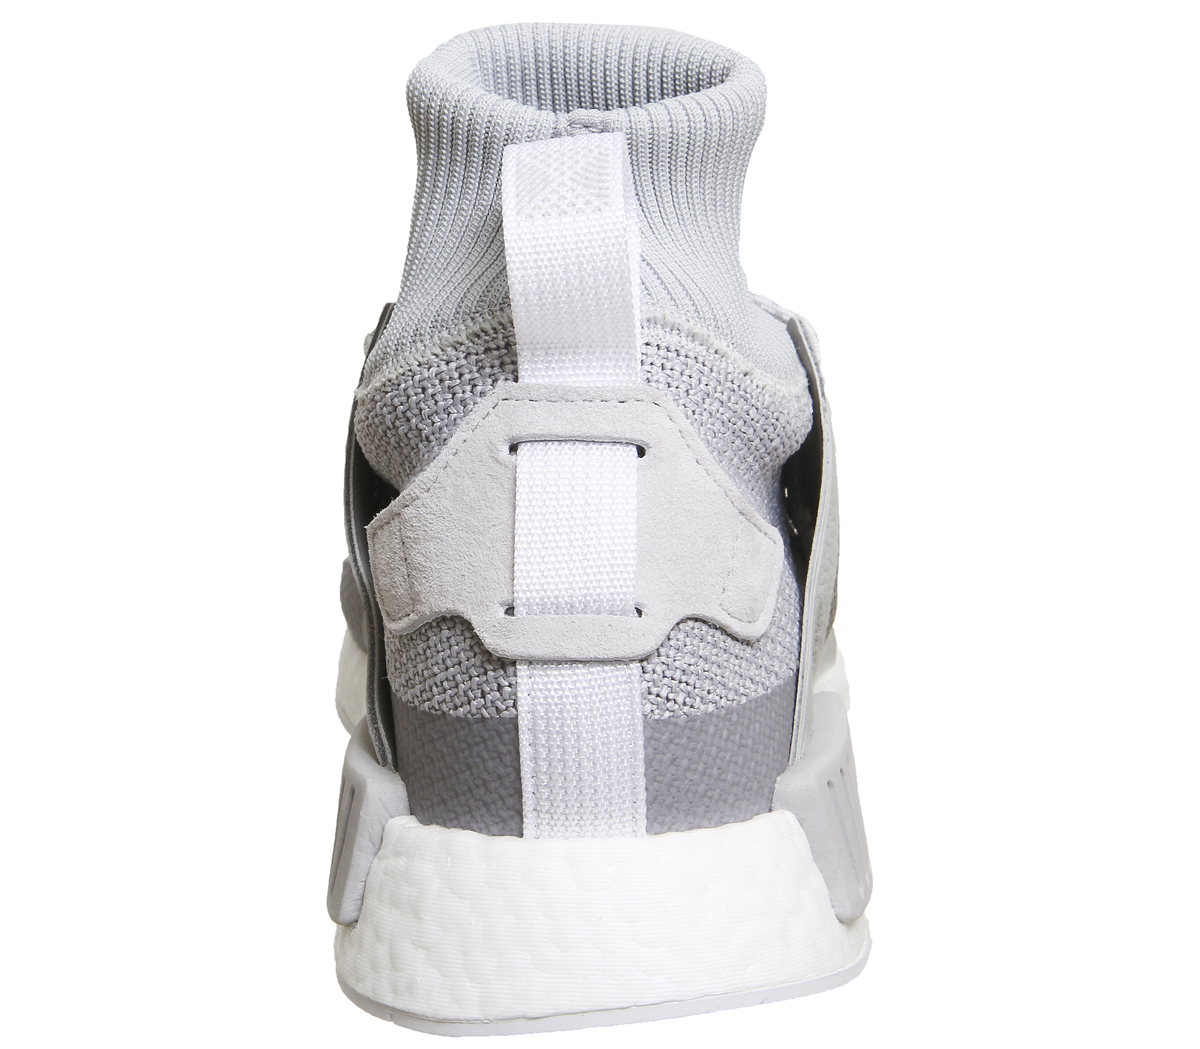 aecf3e07b Sentinel Adidas Nmd Zr1 Winter Grey Two White Trainers Shoes